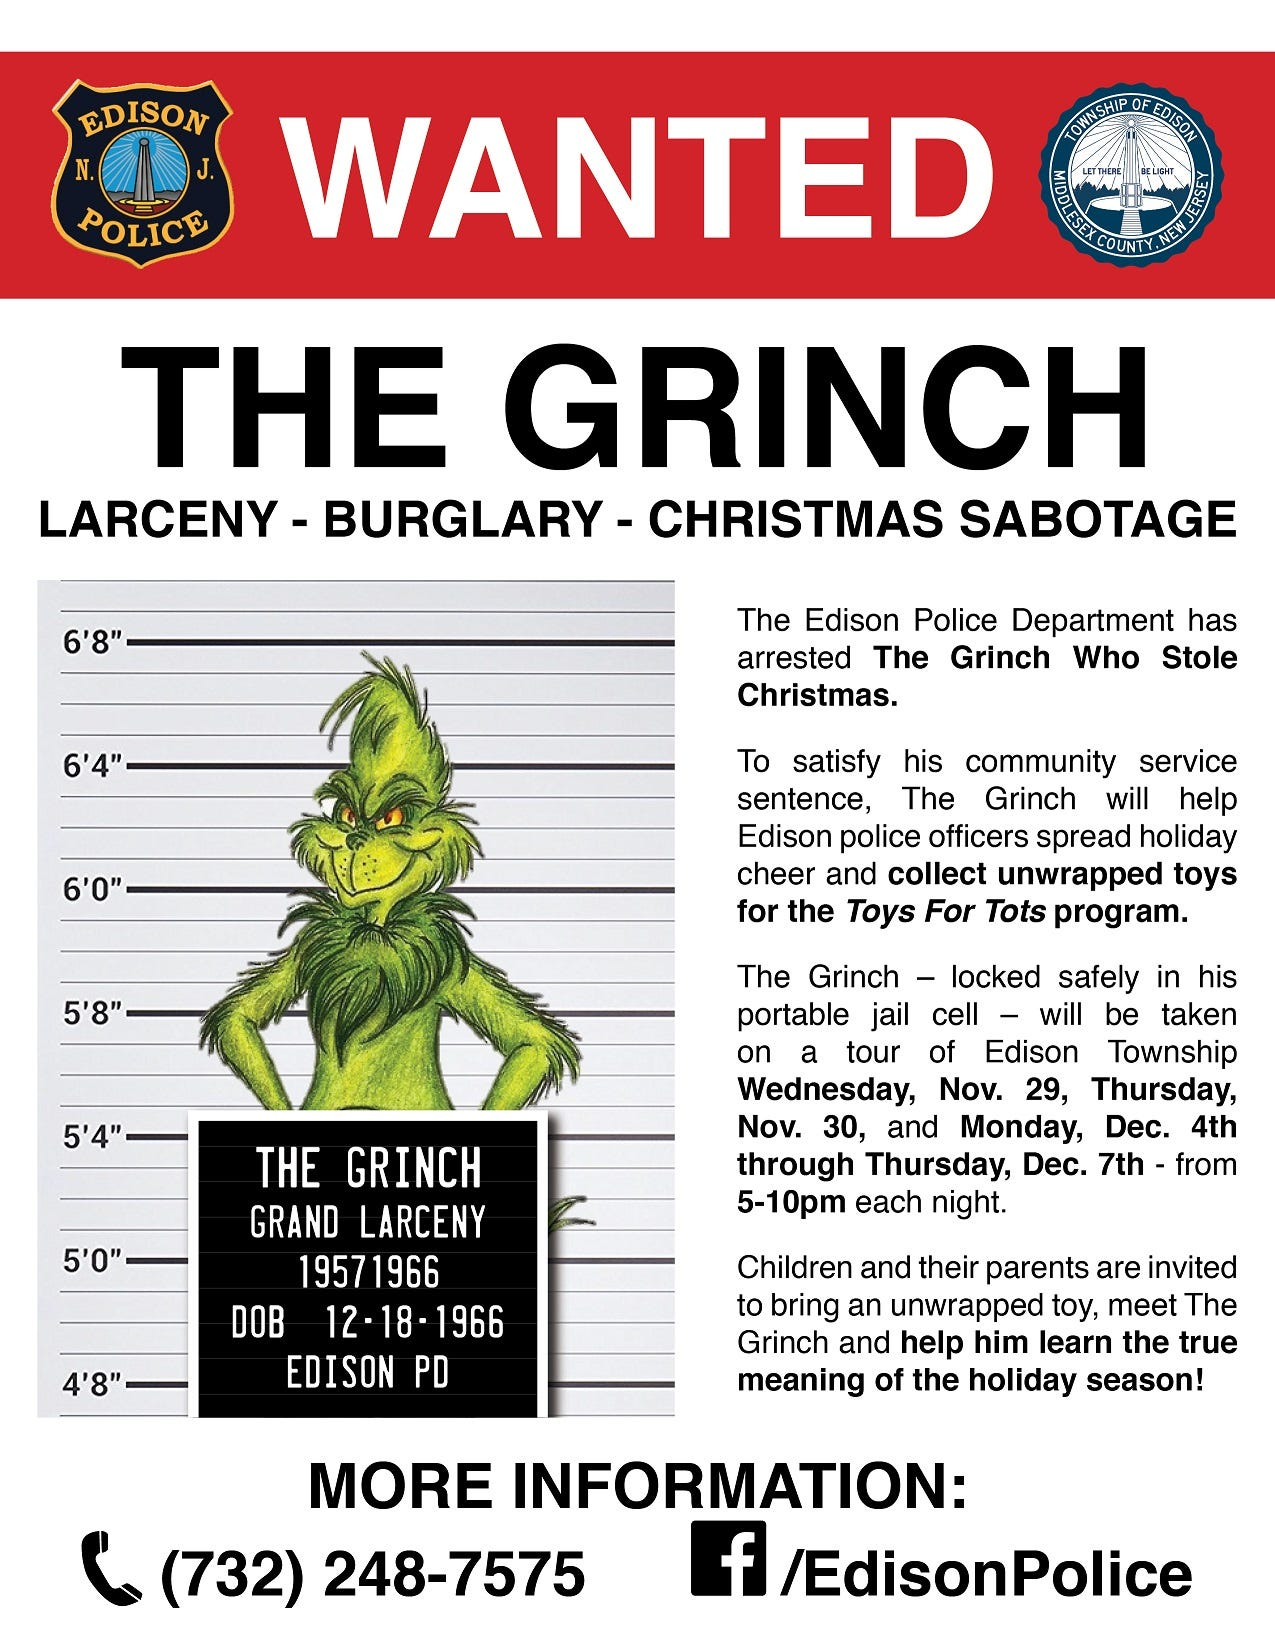 Edison Cops arrest the Grinch trying to steal Christmas